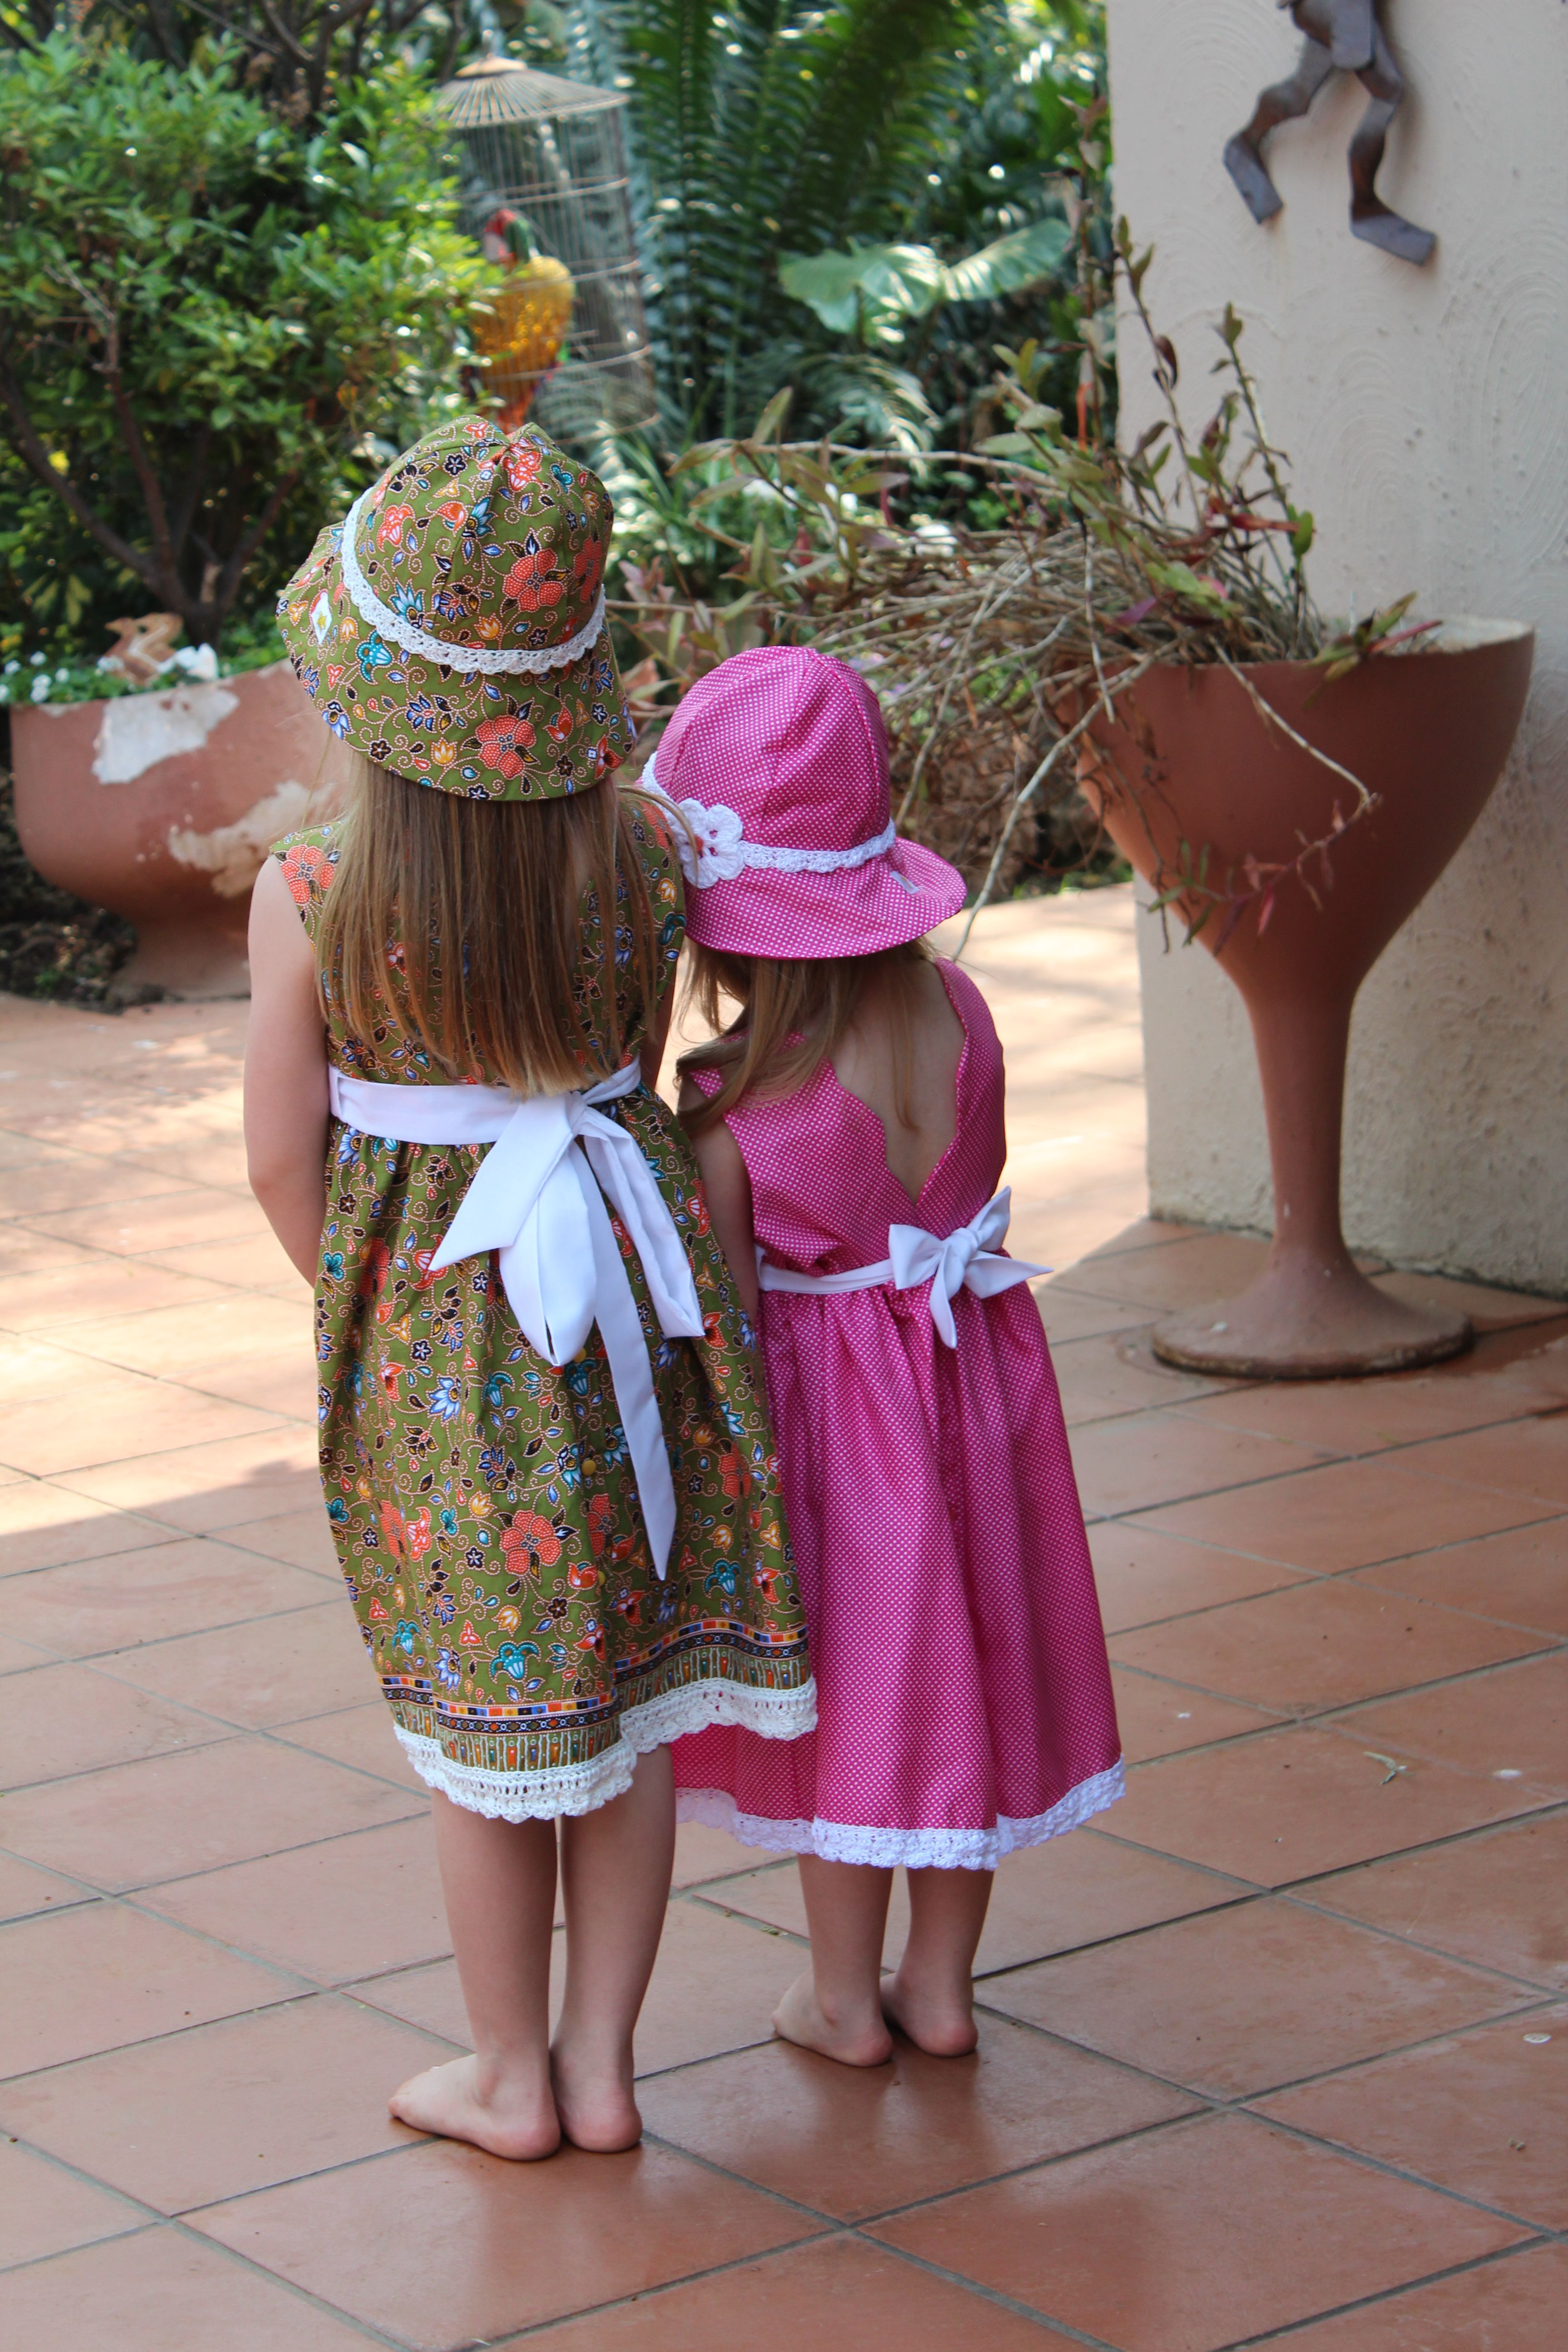 skirt green crochet wide girls hat occasion spring special dress floral summer sun for party